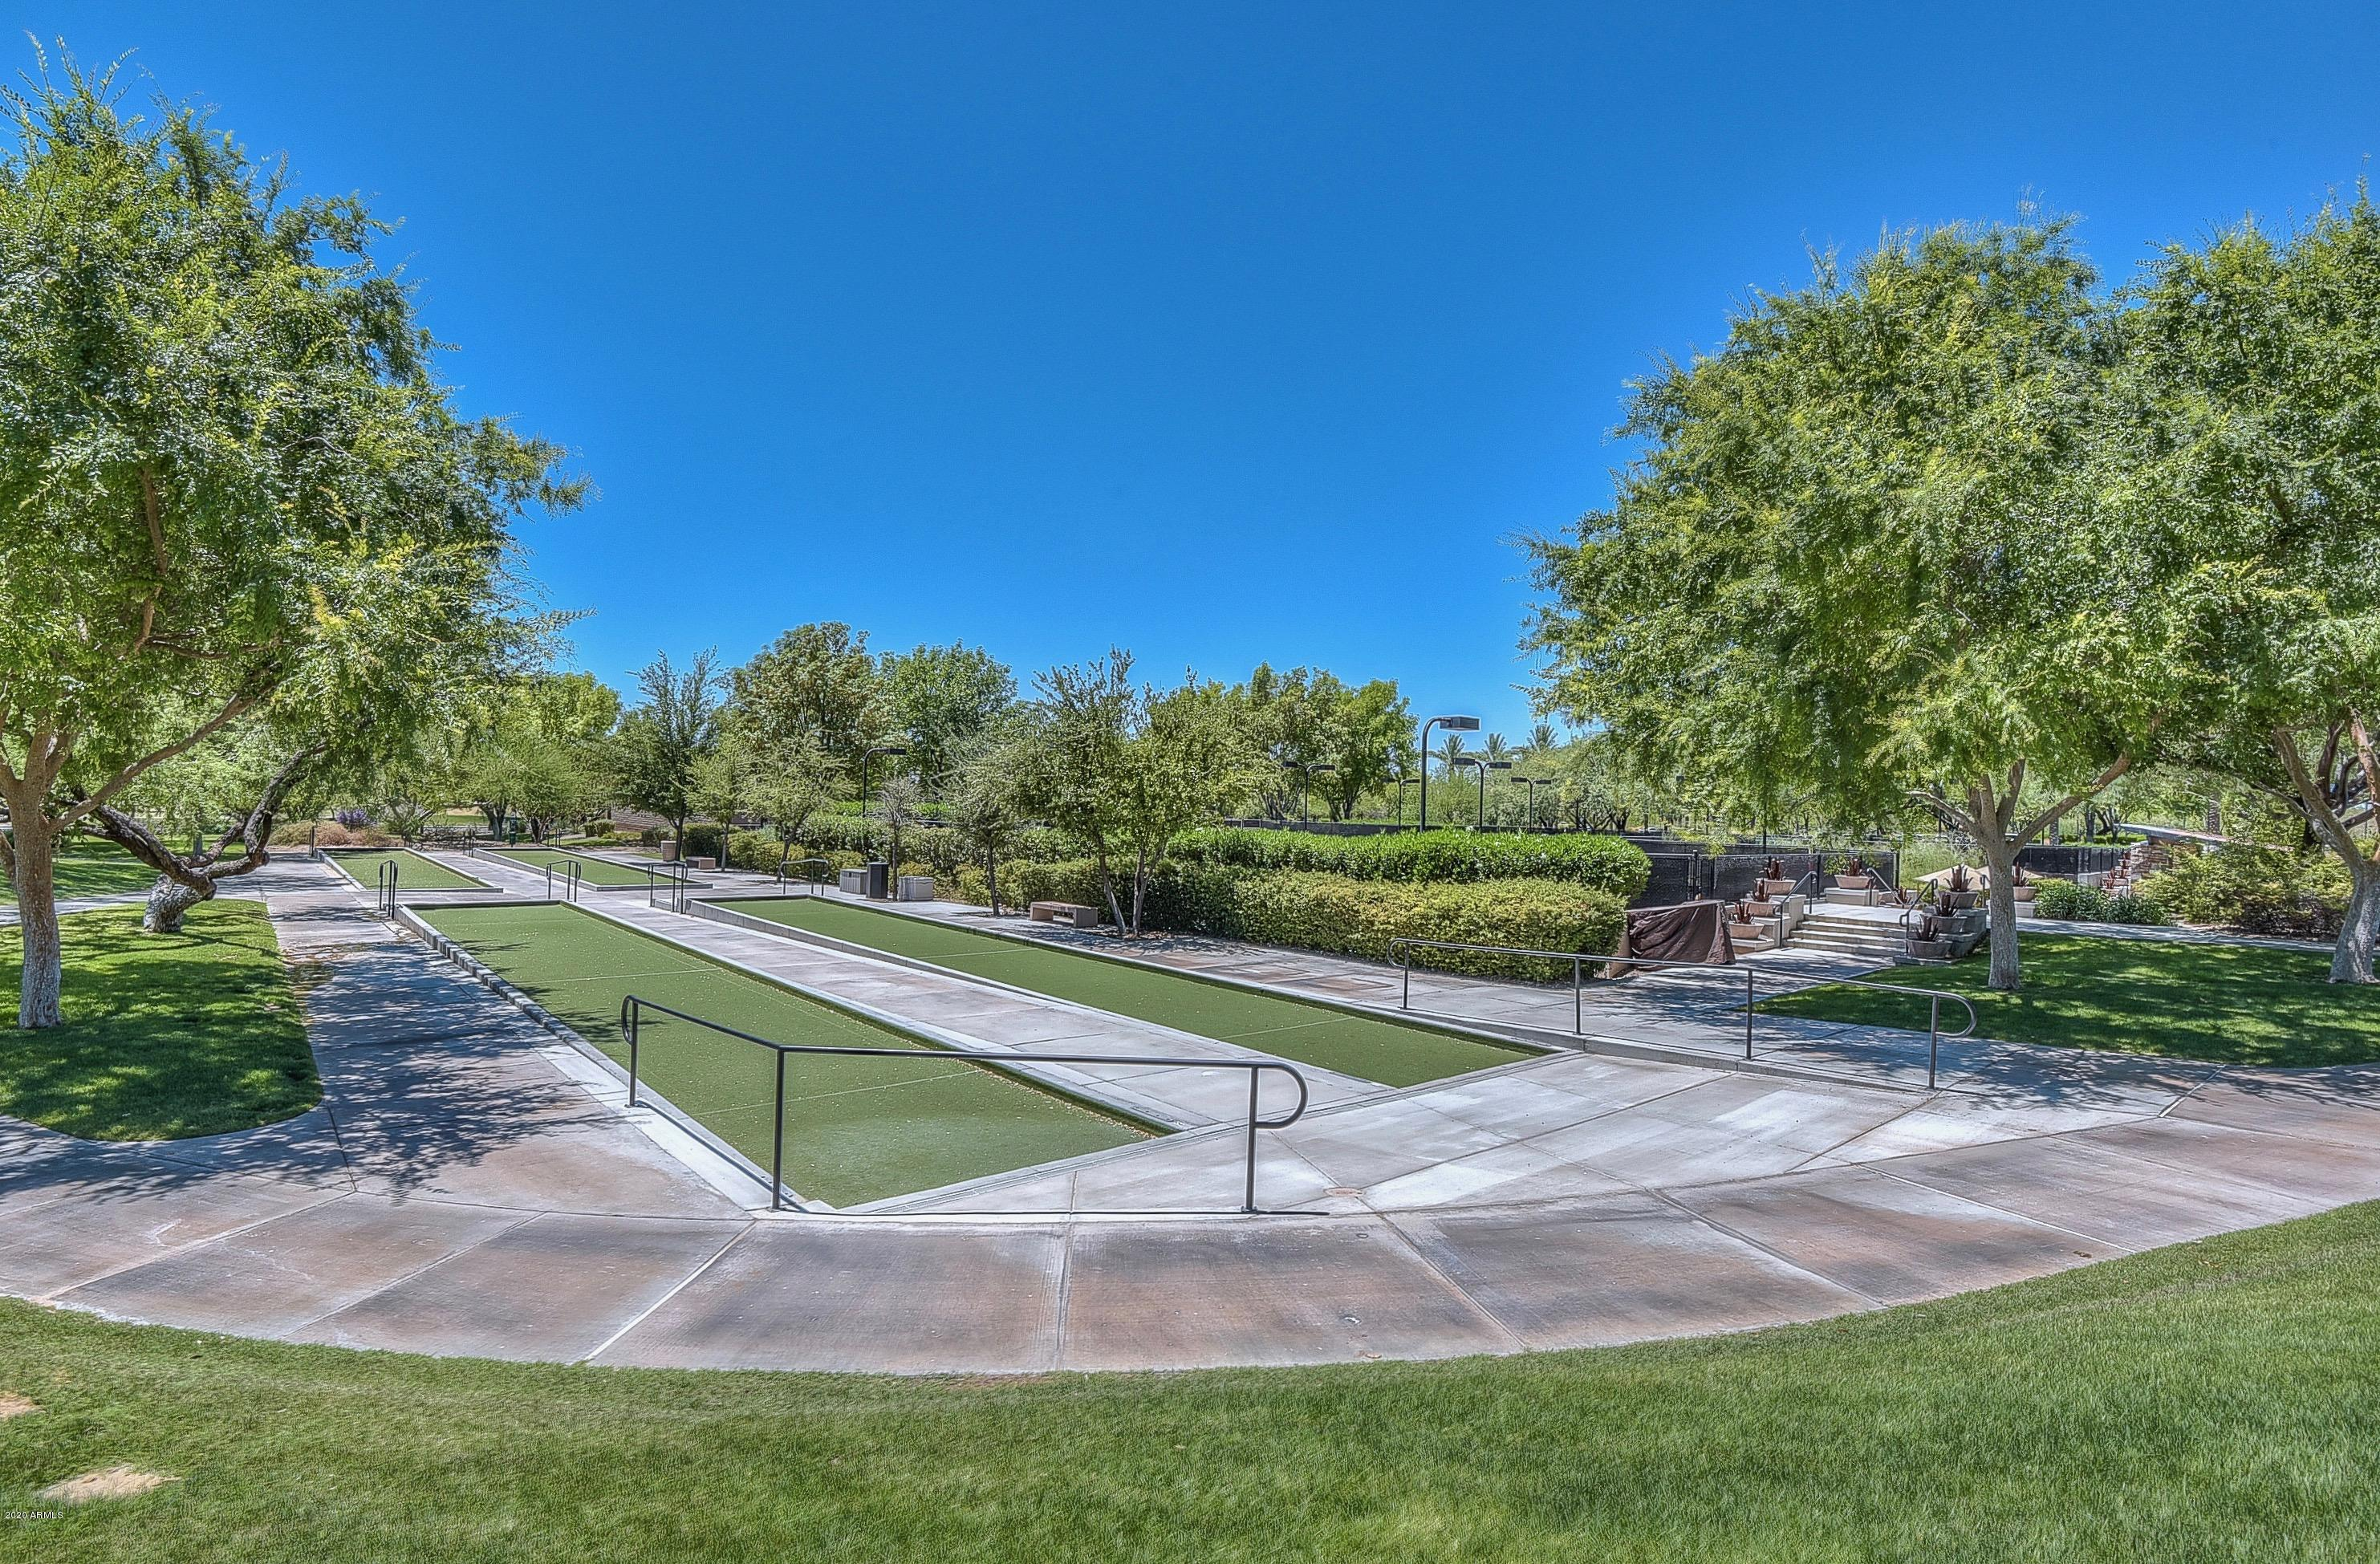 MLS 6042386 29870 N 132nd Drive, Peoria, AZ 85383 Peoria AZ Gated